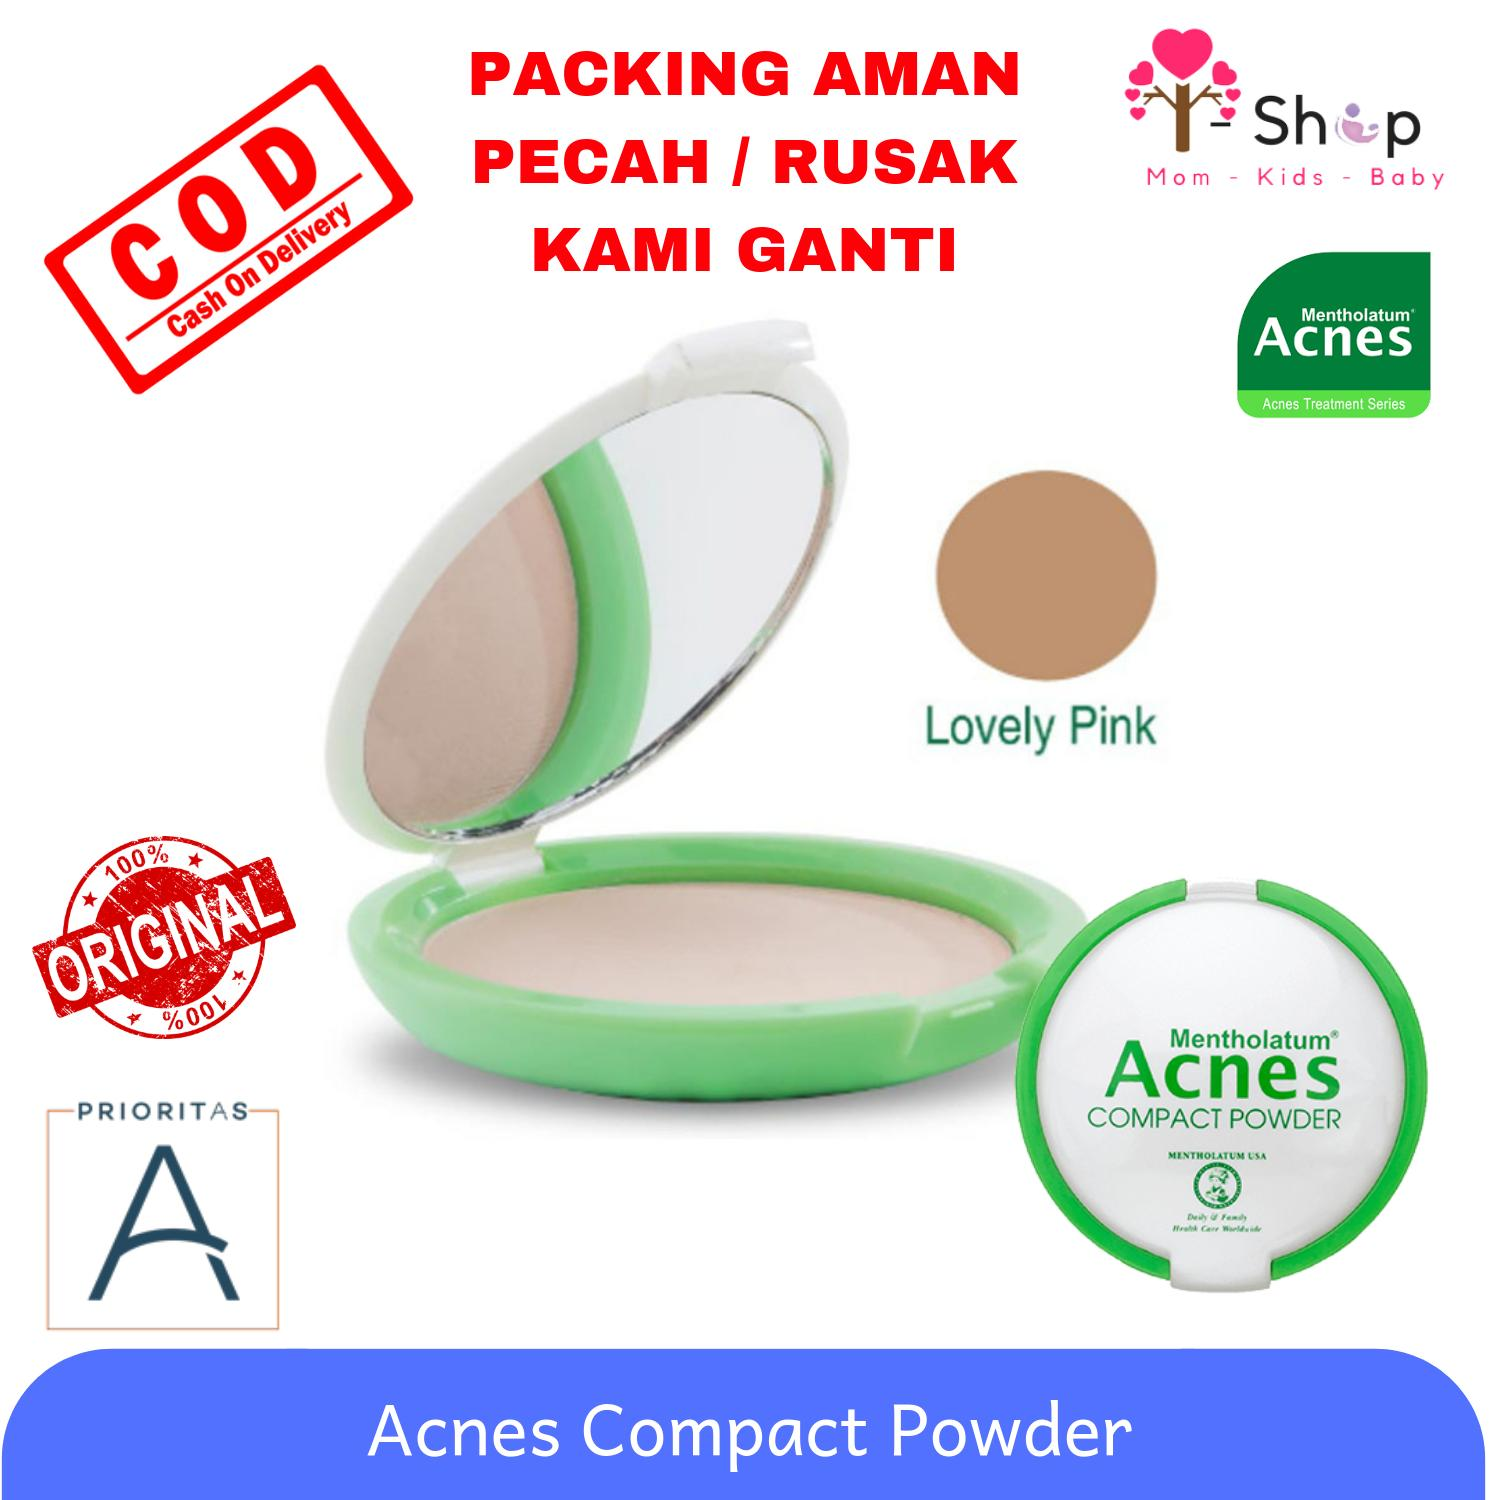 Acnes Compact Powder Acne Treatment Series / Bedak Padat / Bedak Kulit Berjerawat